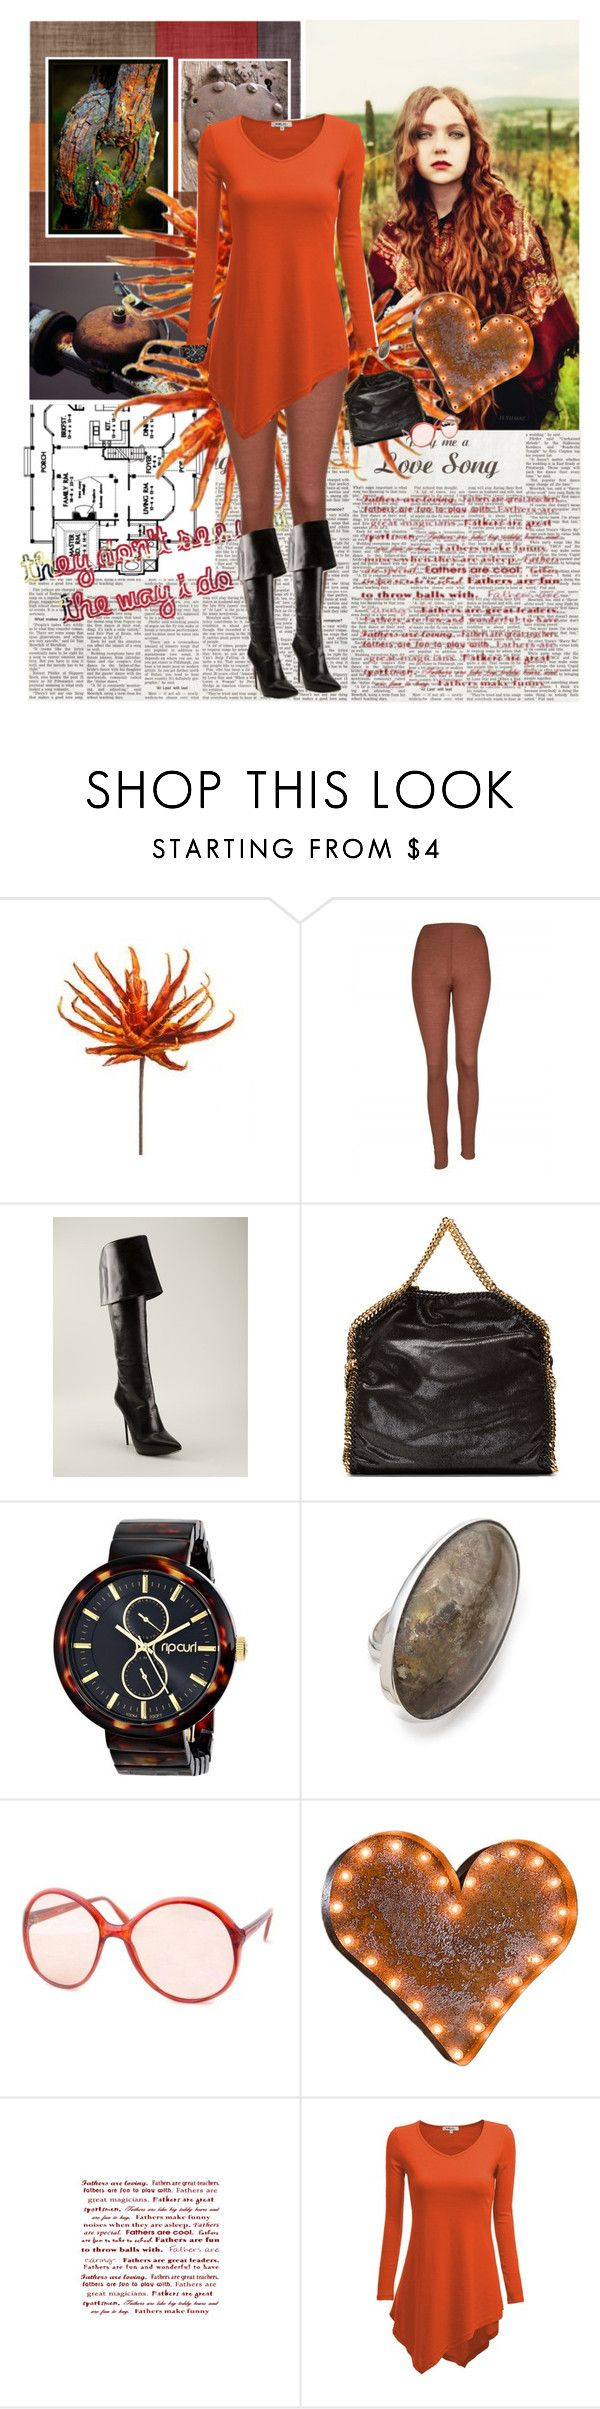 """""""Rusty Heart"""" by valc5 ❤ liked on Polyvore featuring PlayMe Jeans, Gianmarco Lorenzi, STELLA McCARTNEY, Rip Curl, Maison Margiela, Smash Vintage, Vintage Marquee Lights and Doublju"""